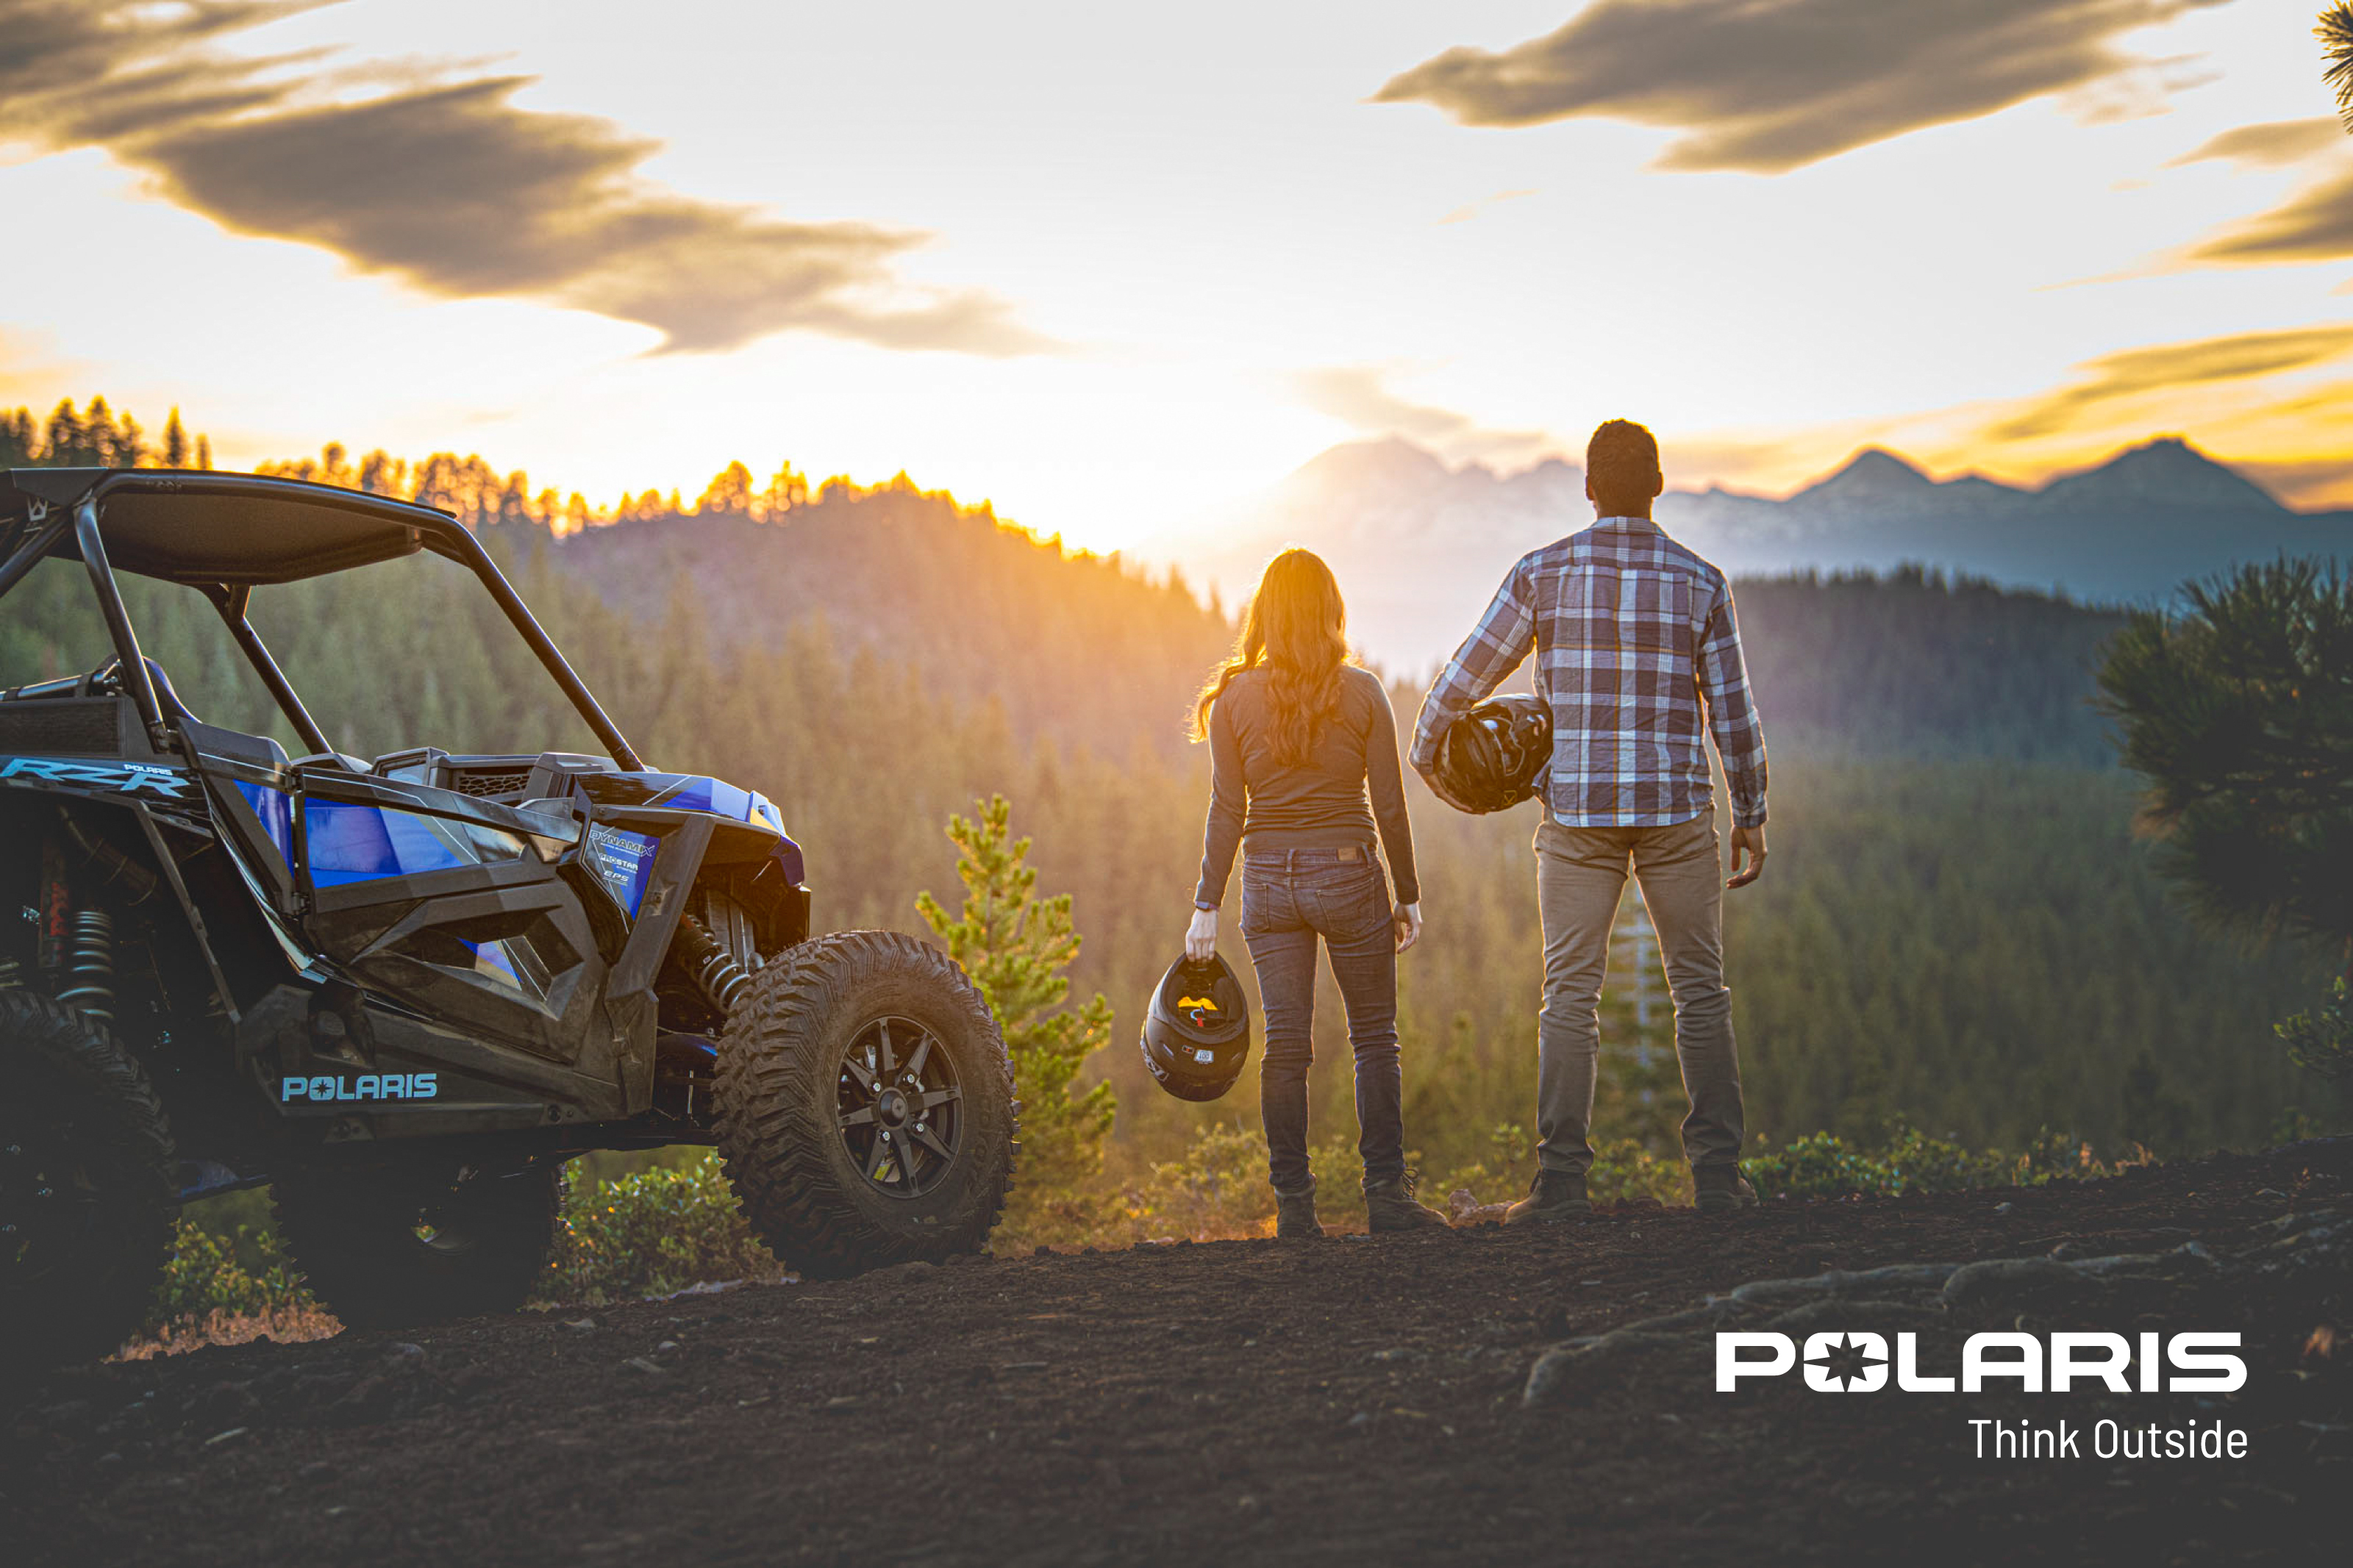 Polaris Evolves Brand to Reflect Growth and Encourages Consumers to